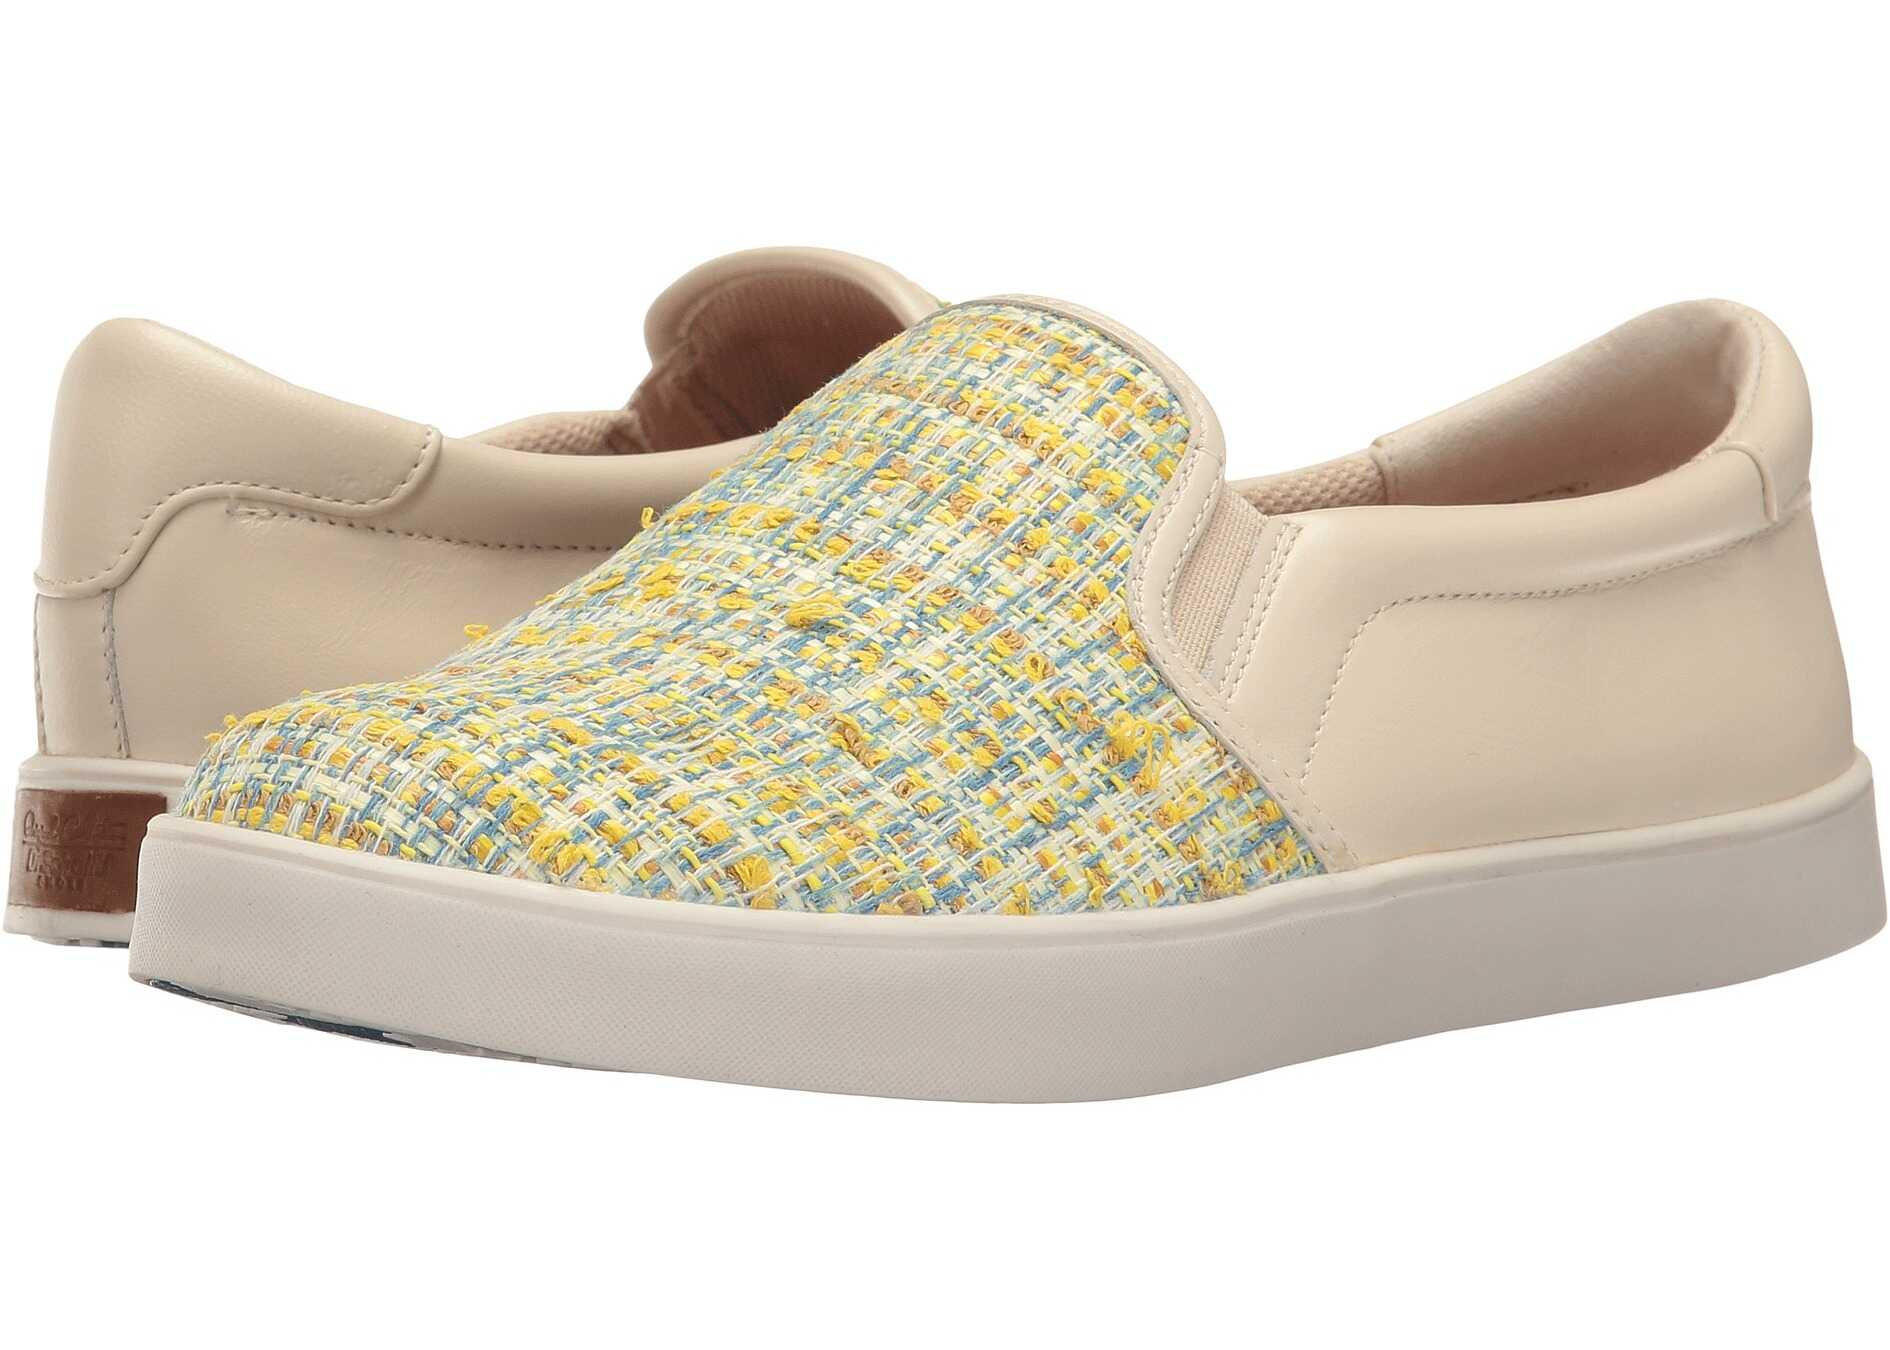 Dr. Scholls Scout - Original Collection Yellow Multi/Ivory Tweed